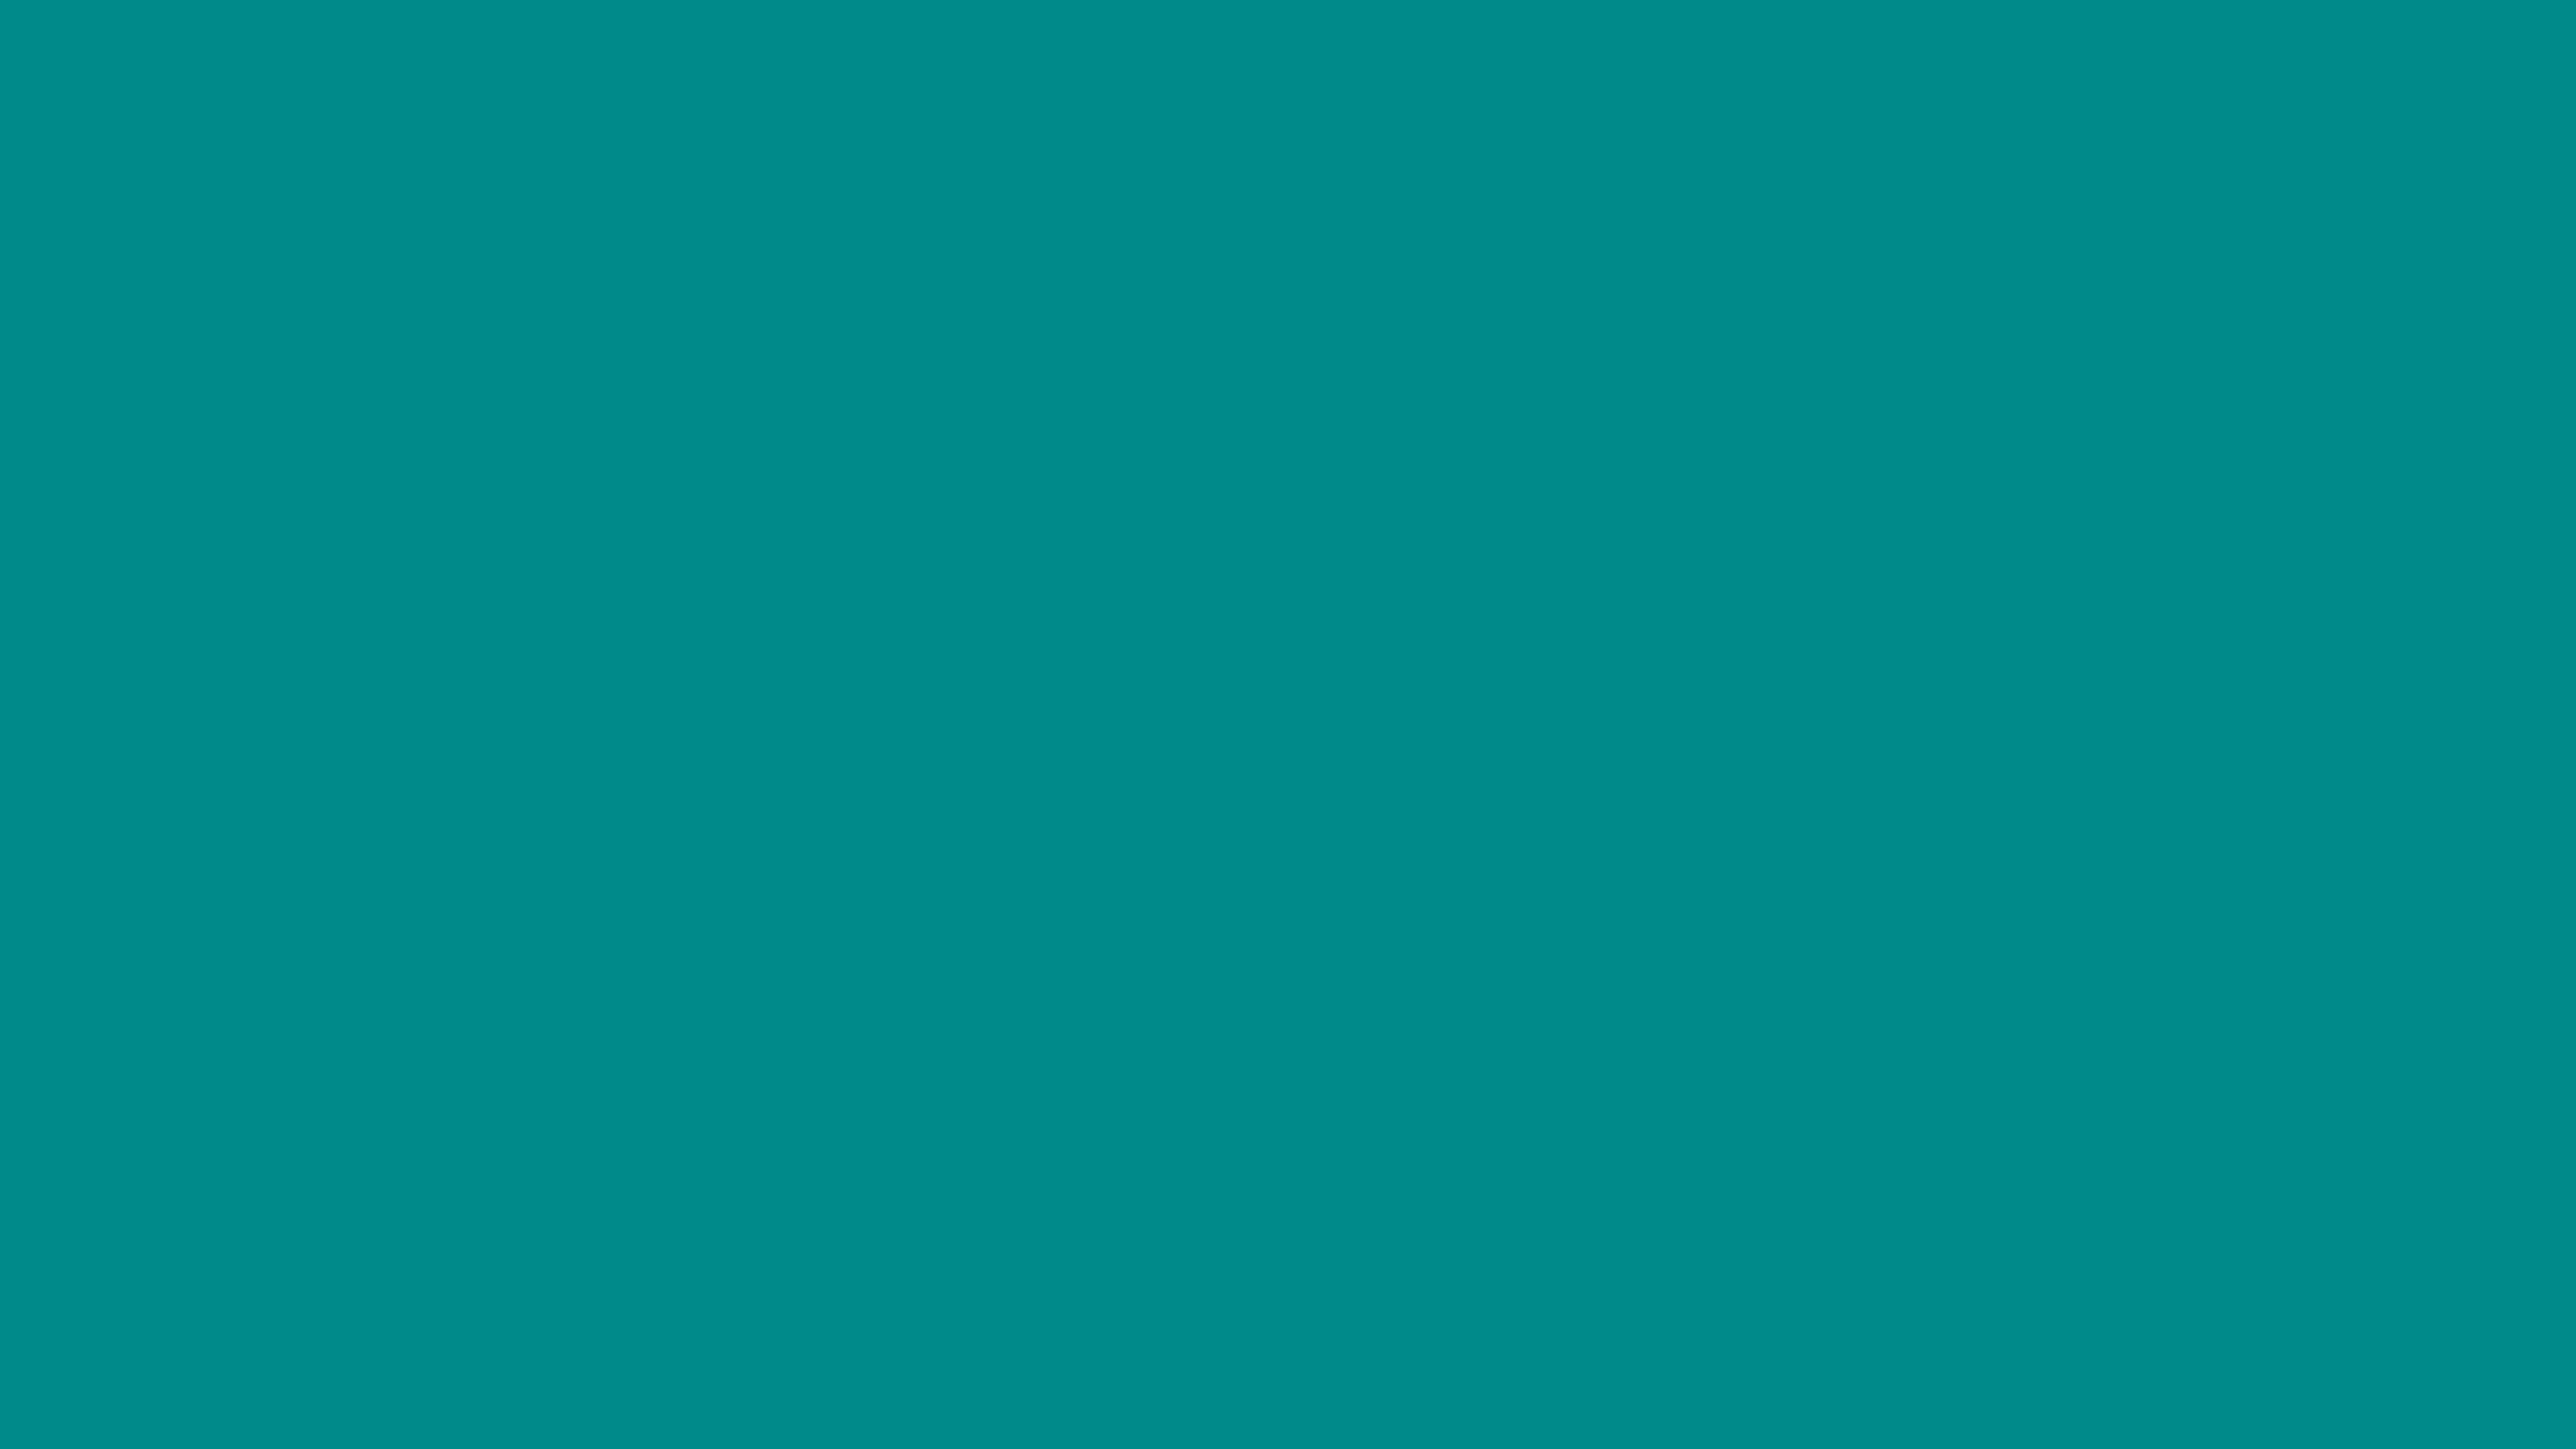 4096x2304 Dark Cyan Solid Color Background